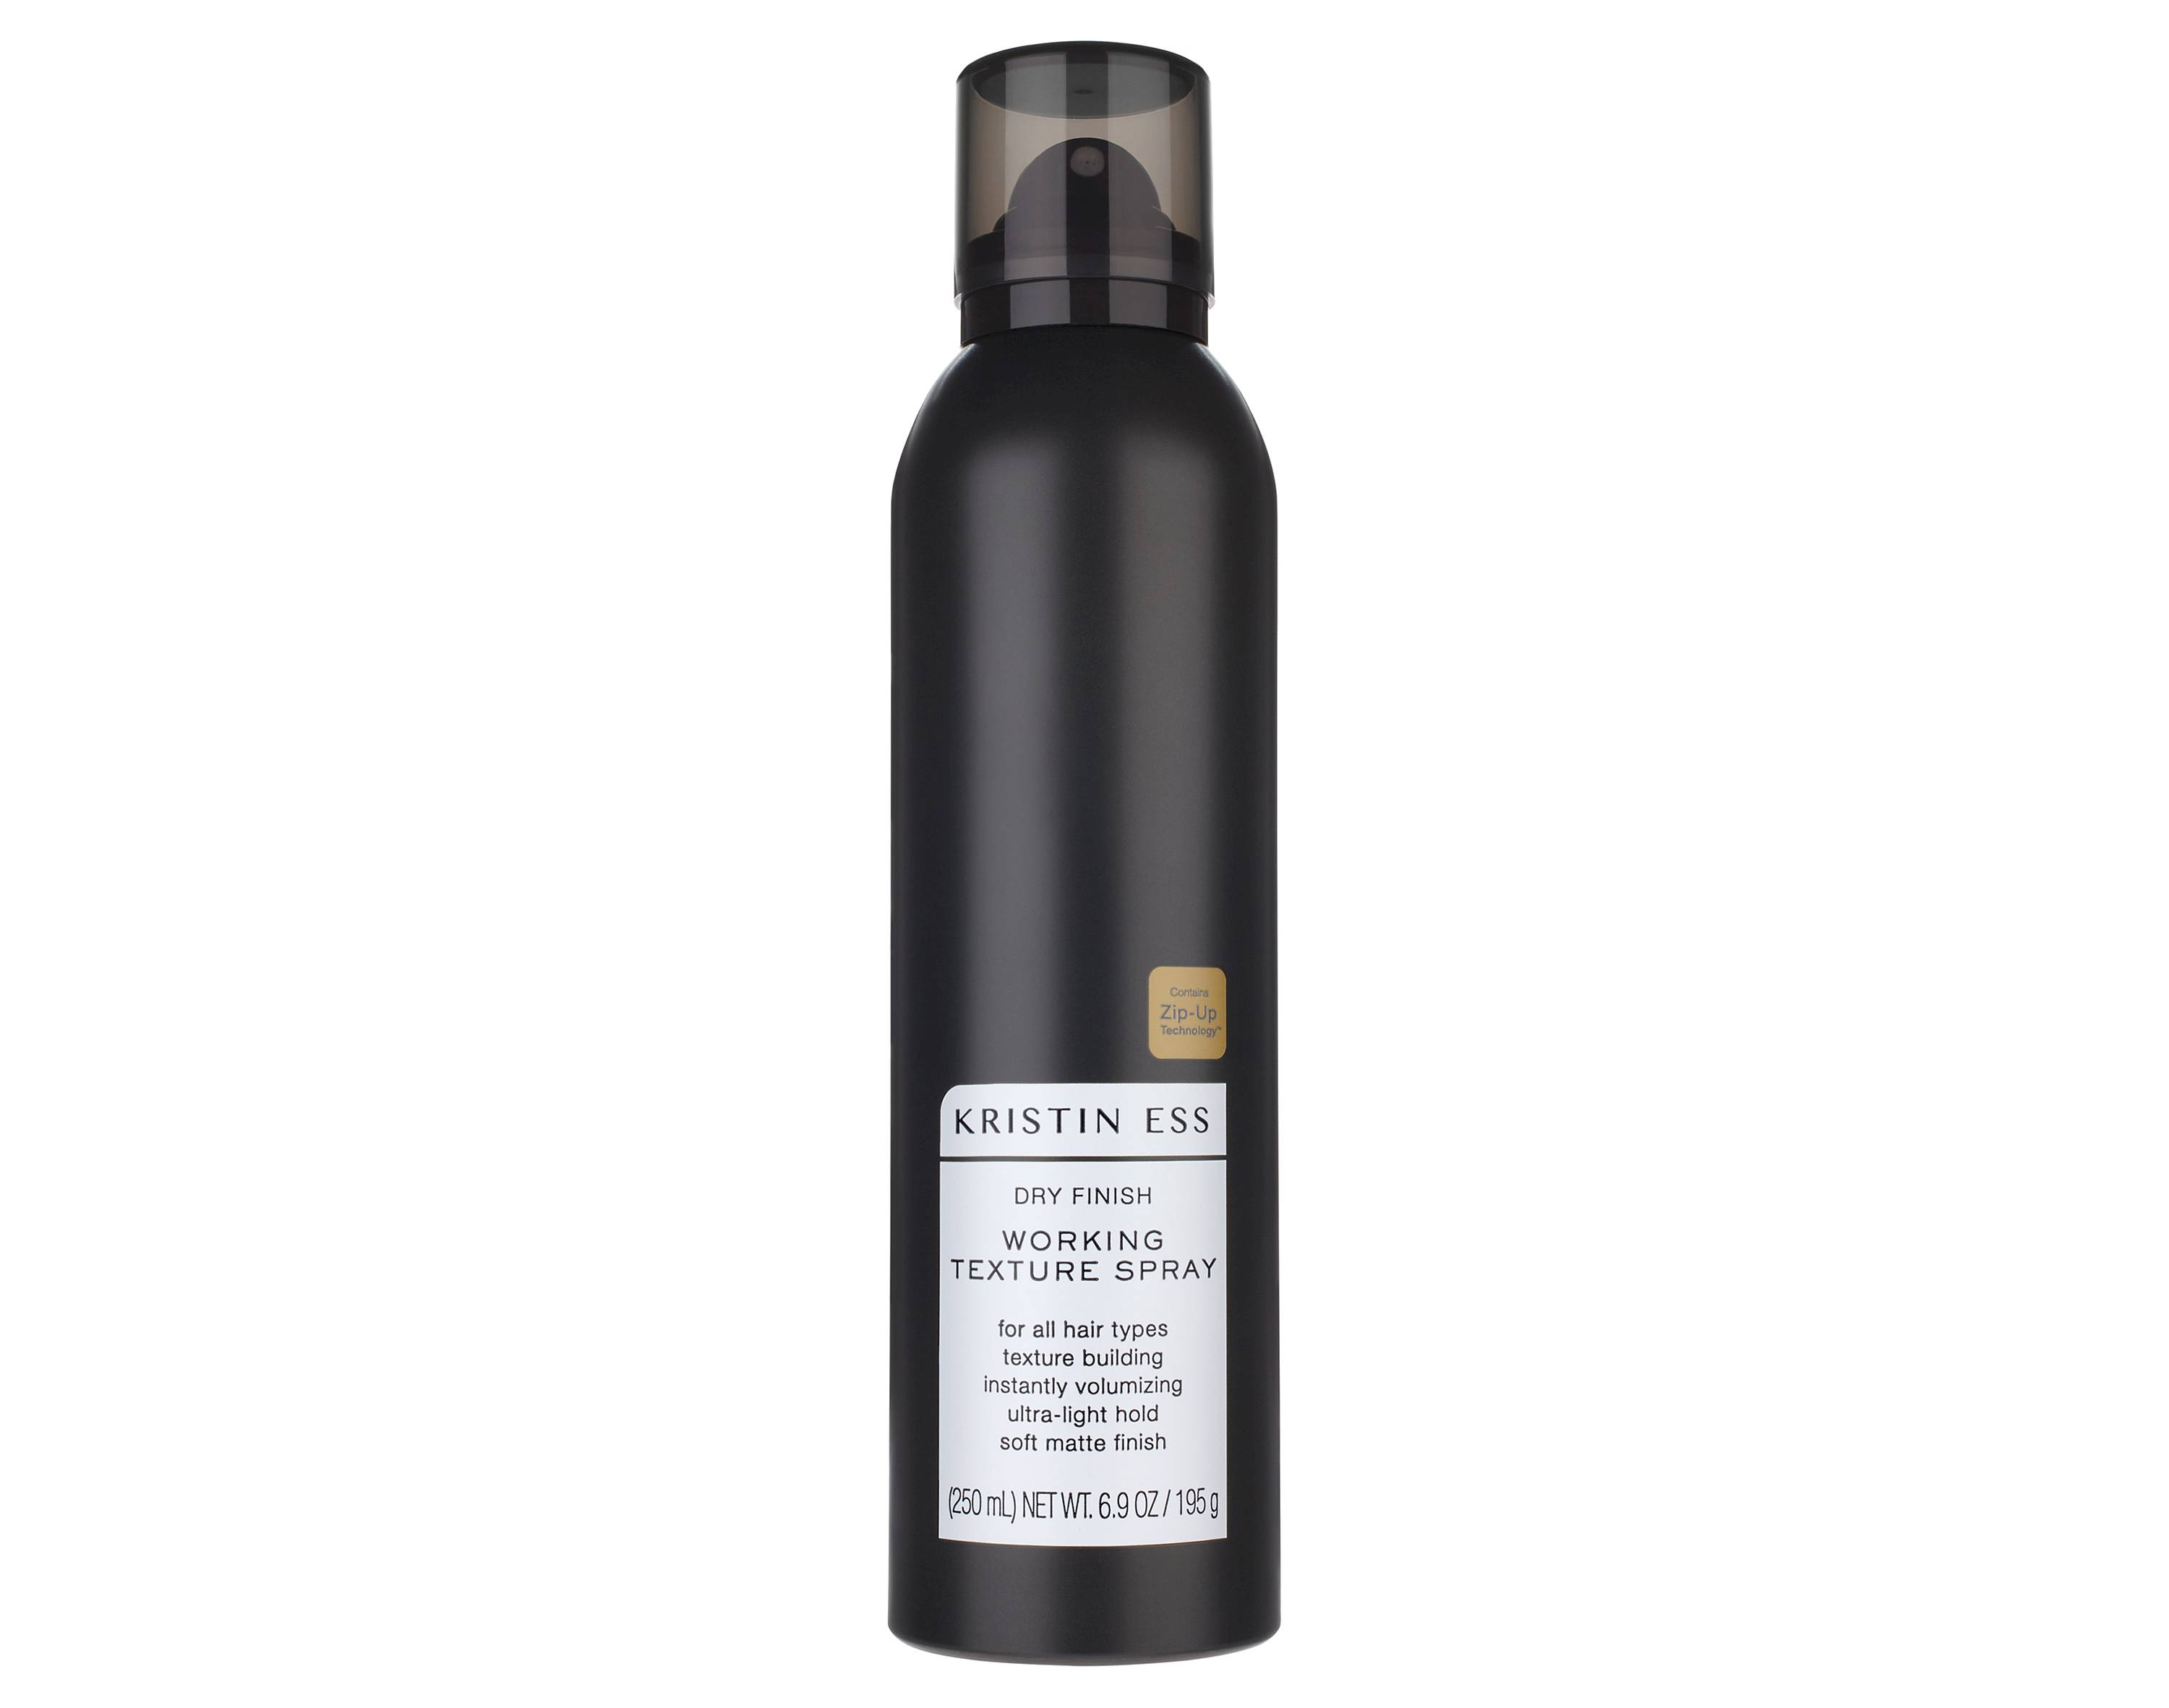 Kristin Ess Dry Finish Working Texture Spray